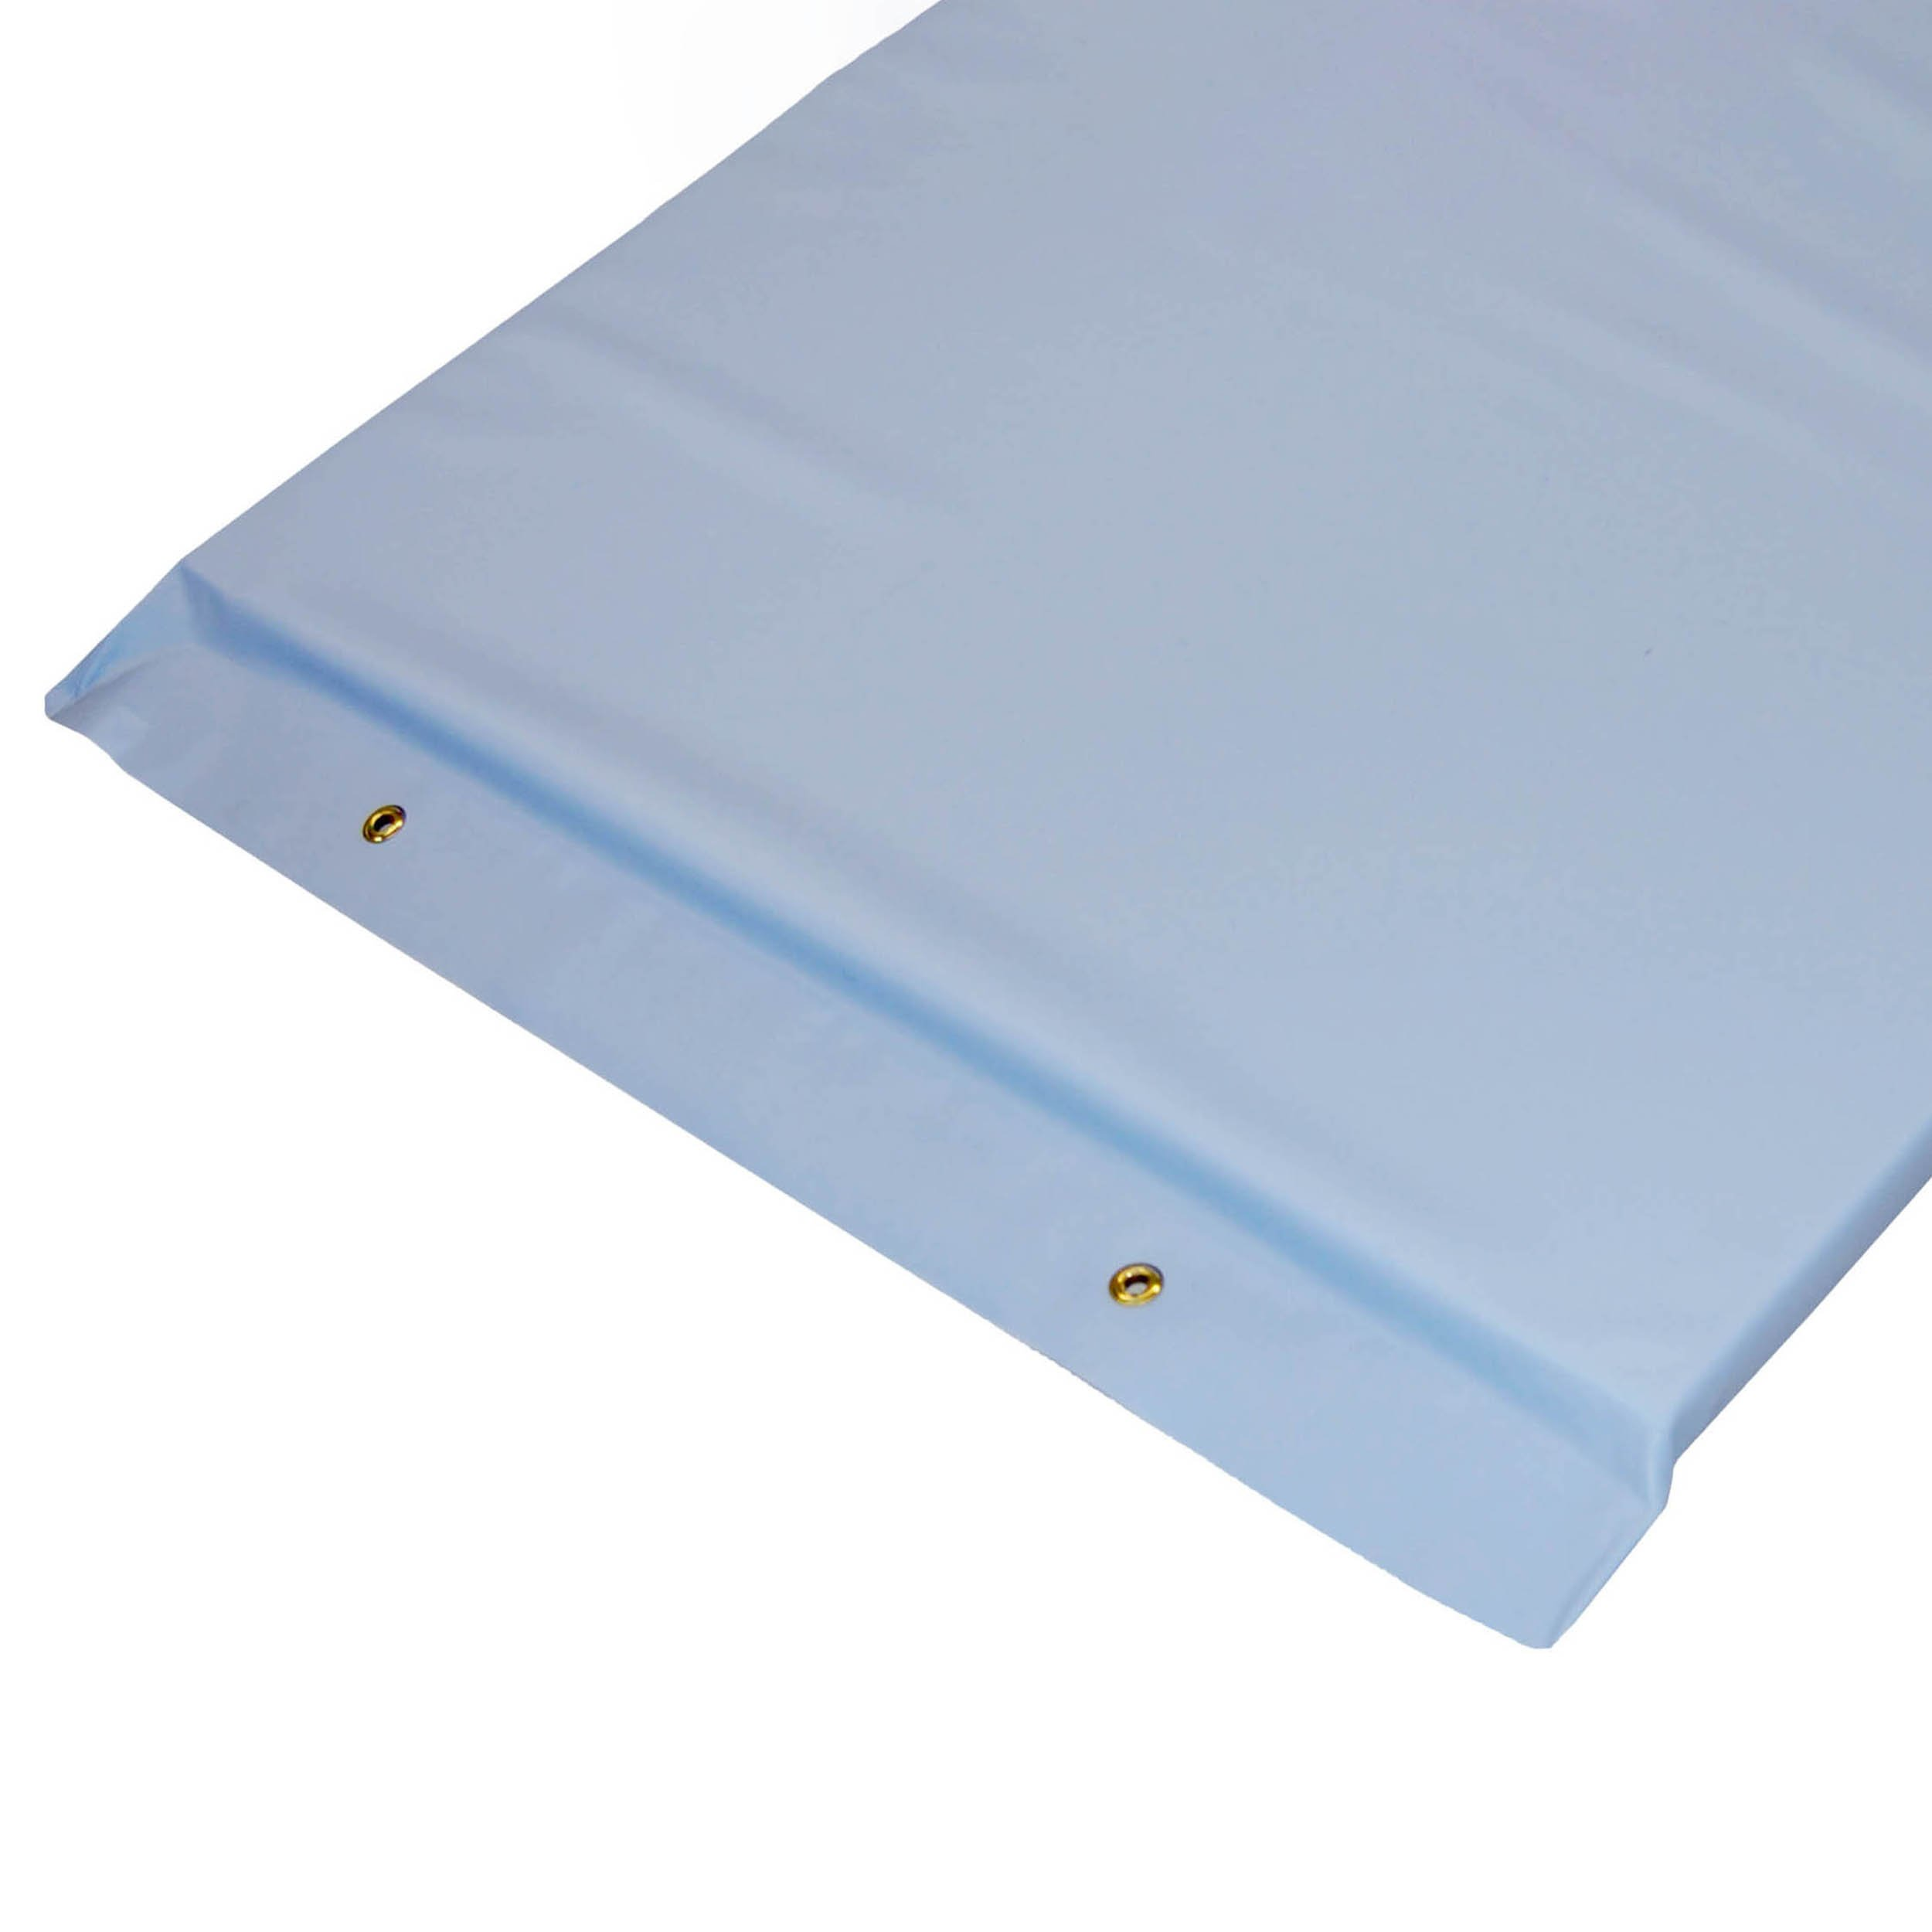 Economy Standard Radiolucent X-Ray Firm Foam Table Pad - Light Blue Vinyl, With Grommets 72